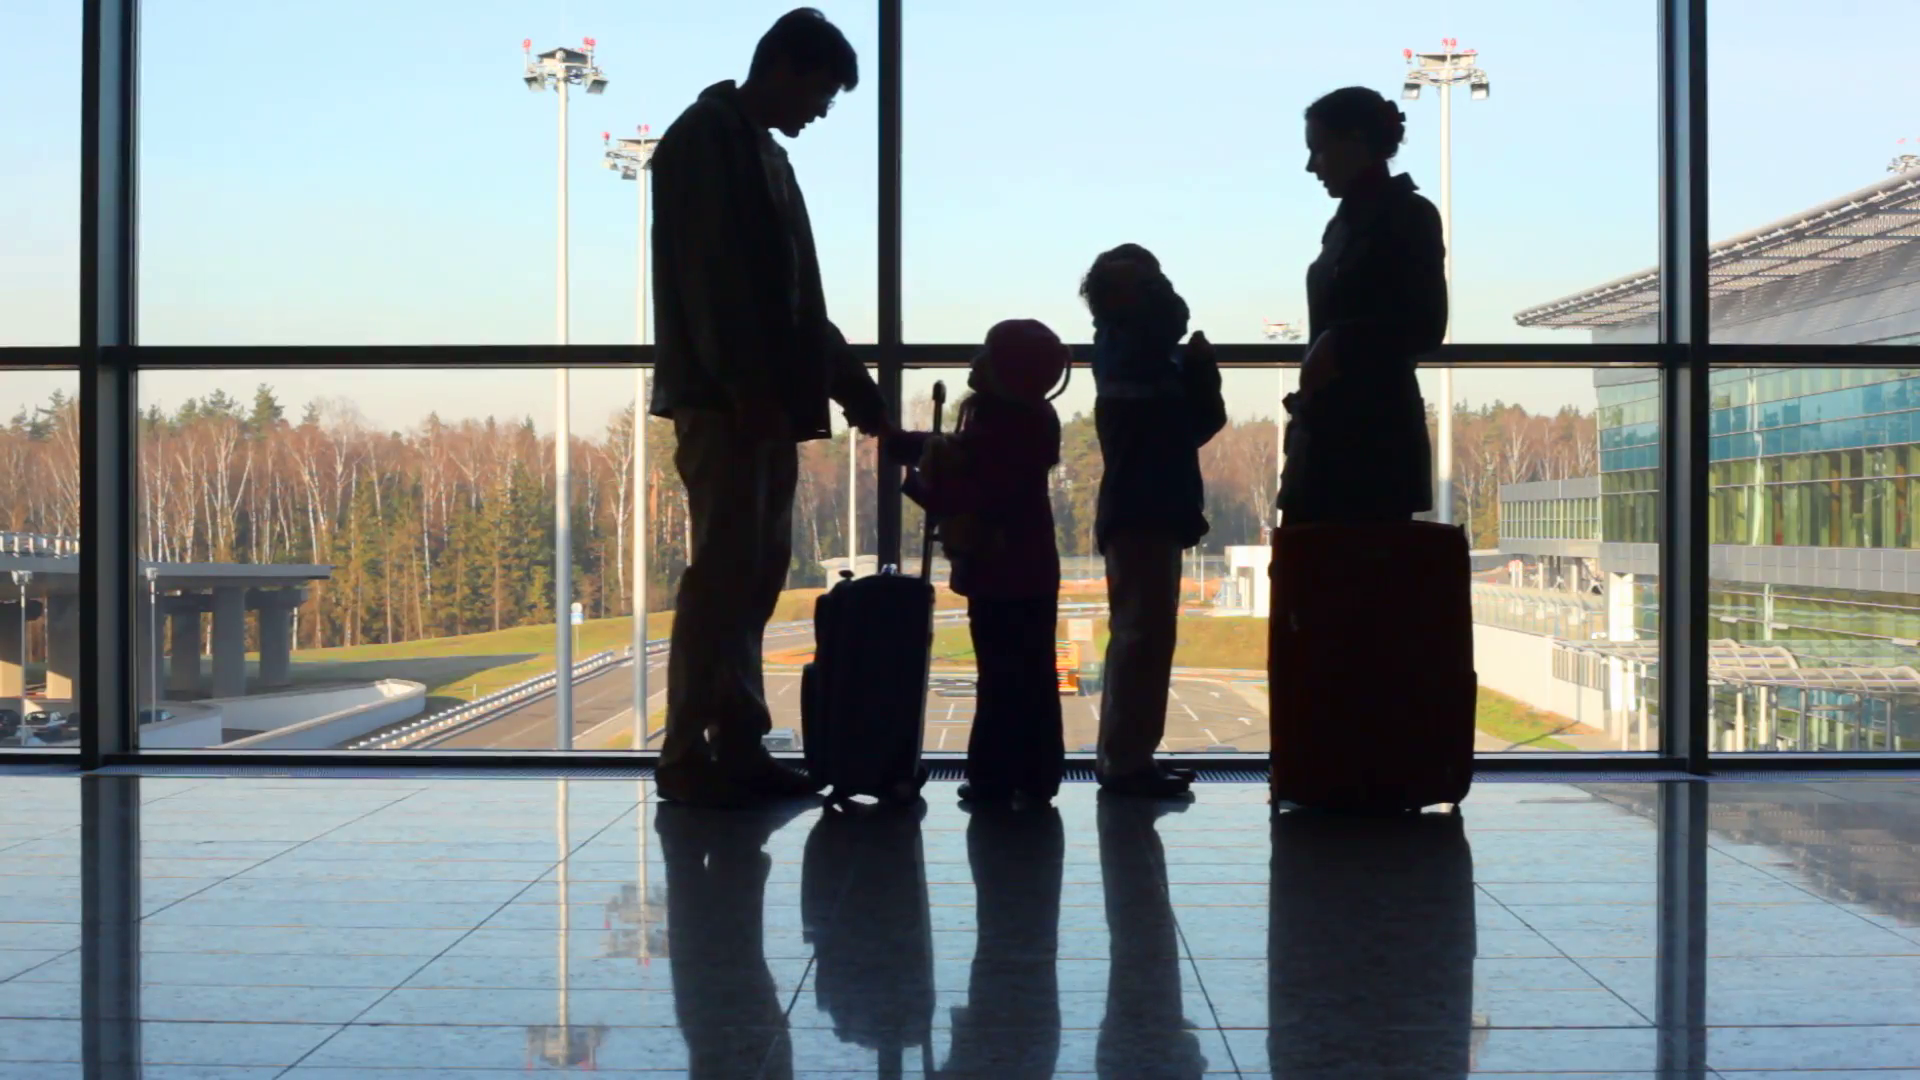 family-stands-against-window-at-airport_7khajhud__F0000